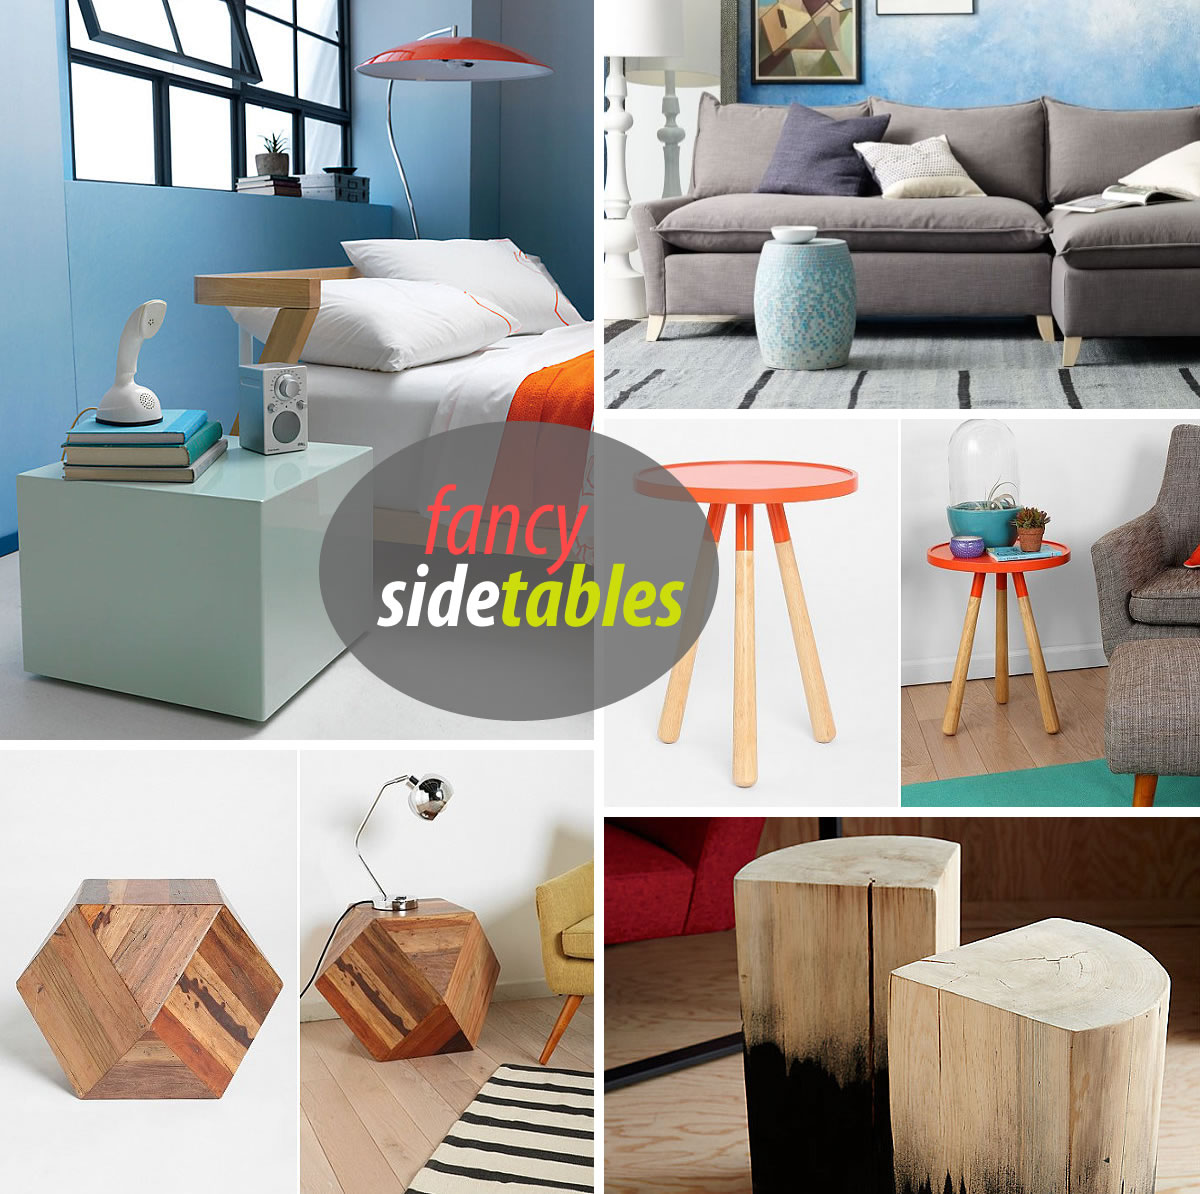 fancy sidetables